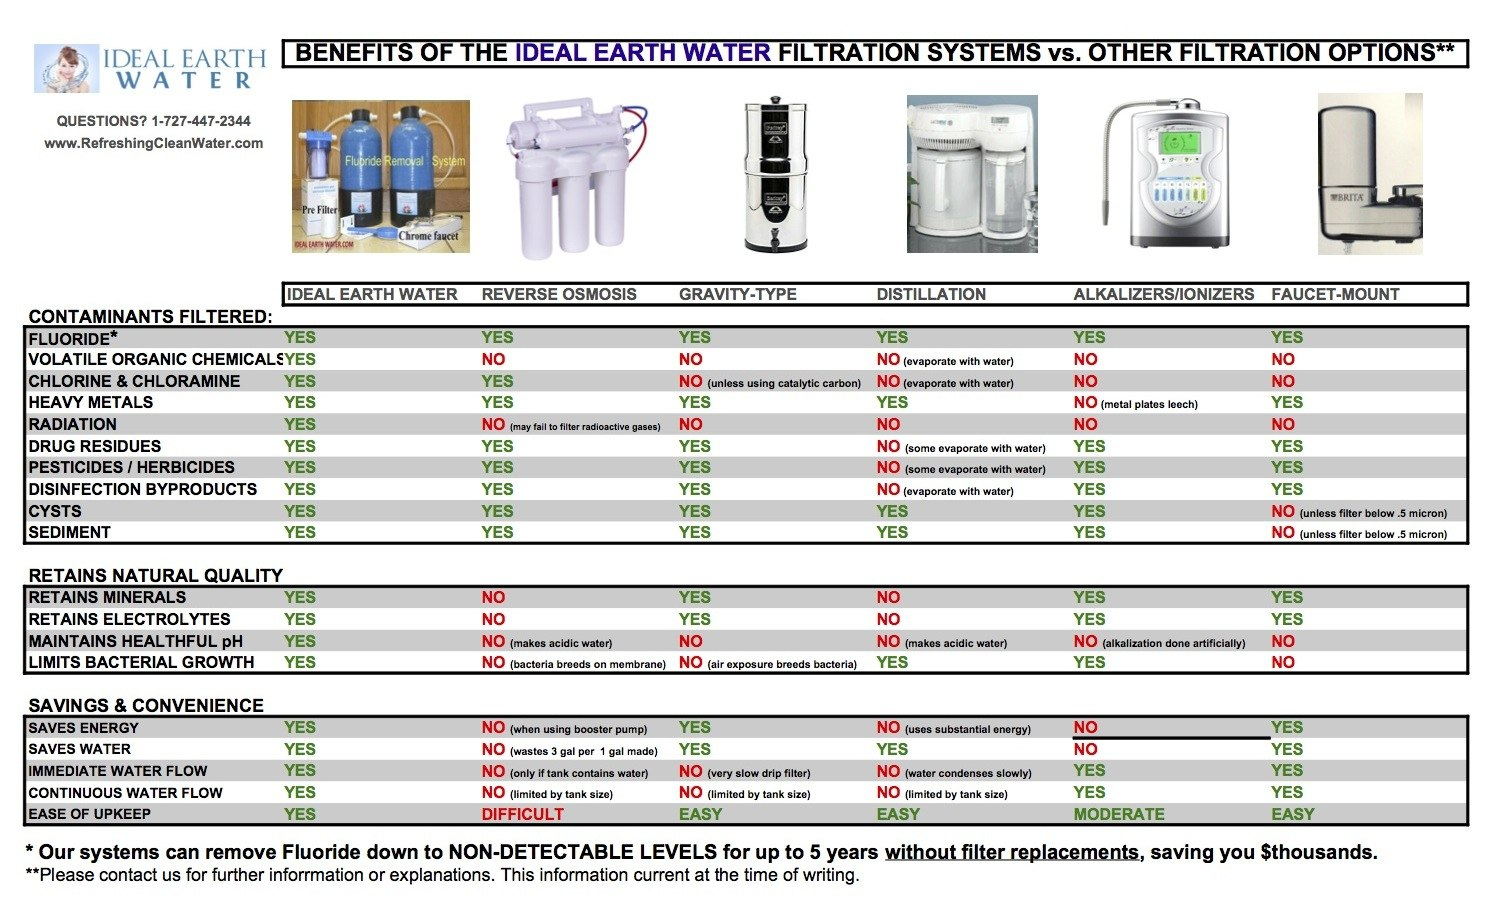 Compare Ideal Earth Water to other Filtration Systems